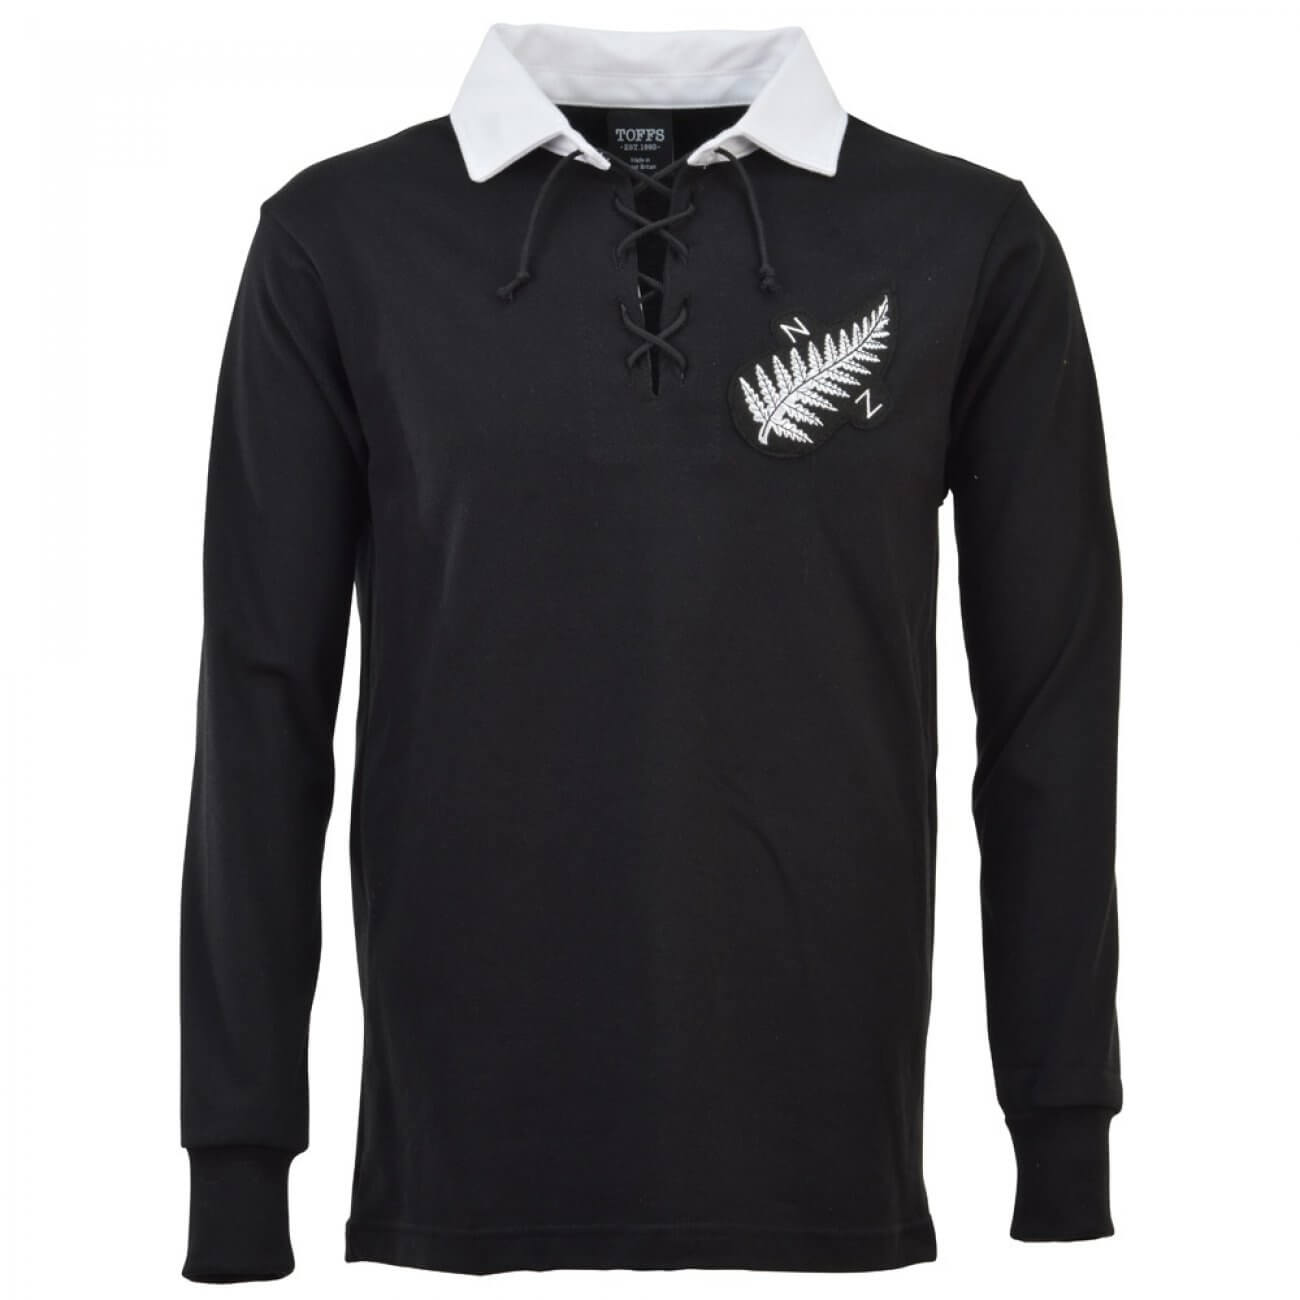 New Zealand 1924 Retro Rugby Shirt